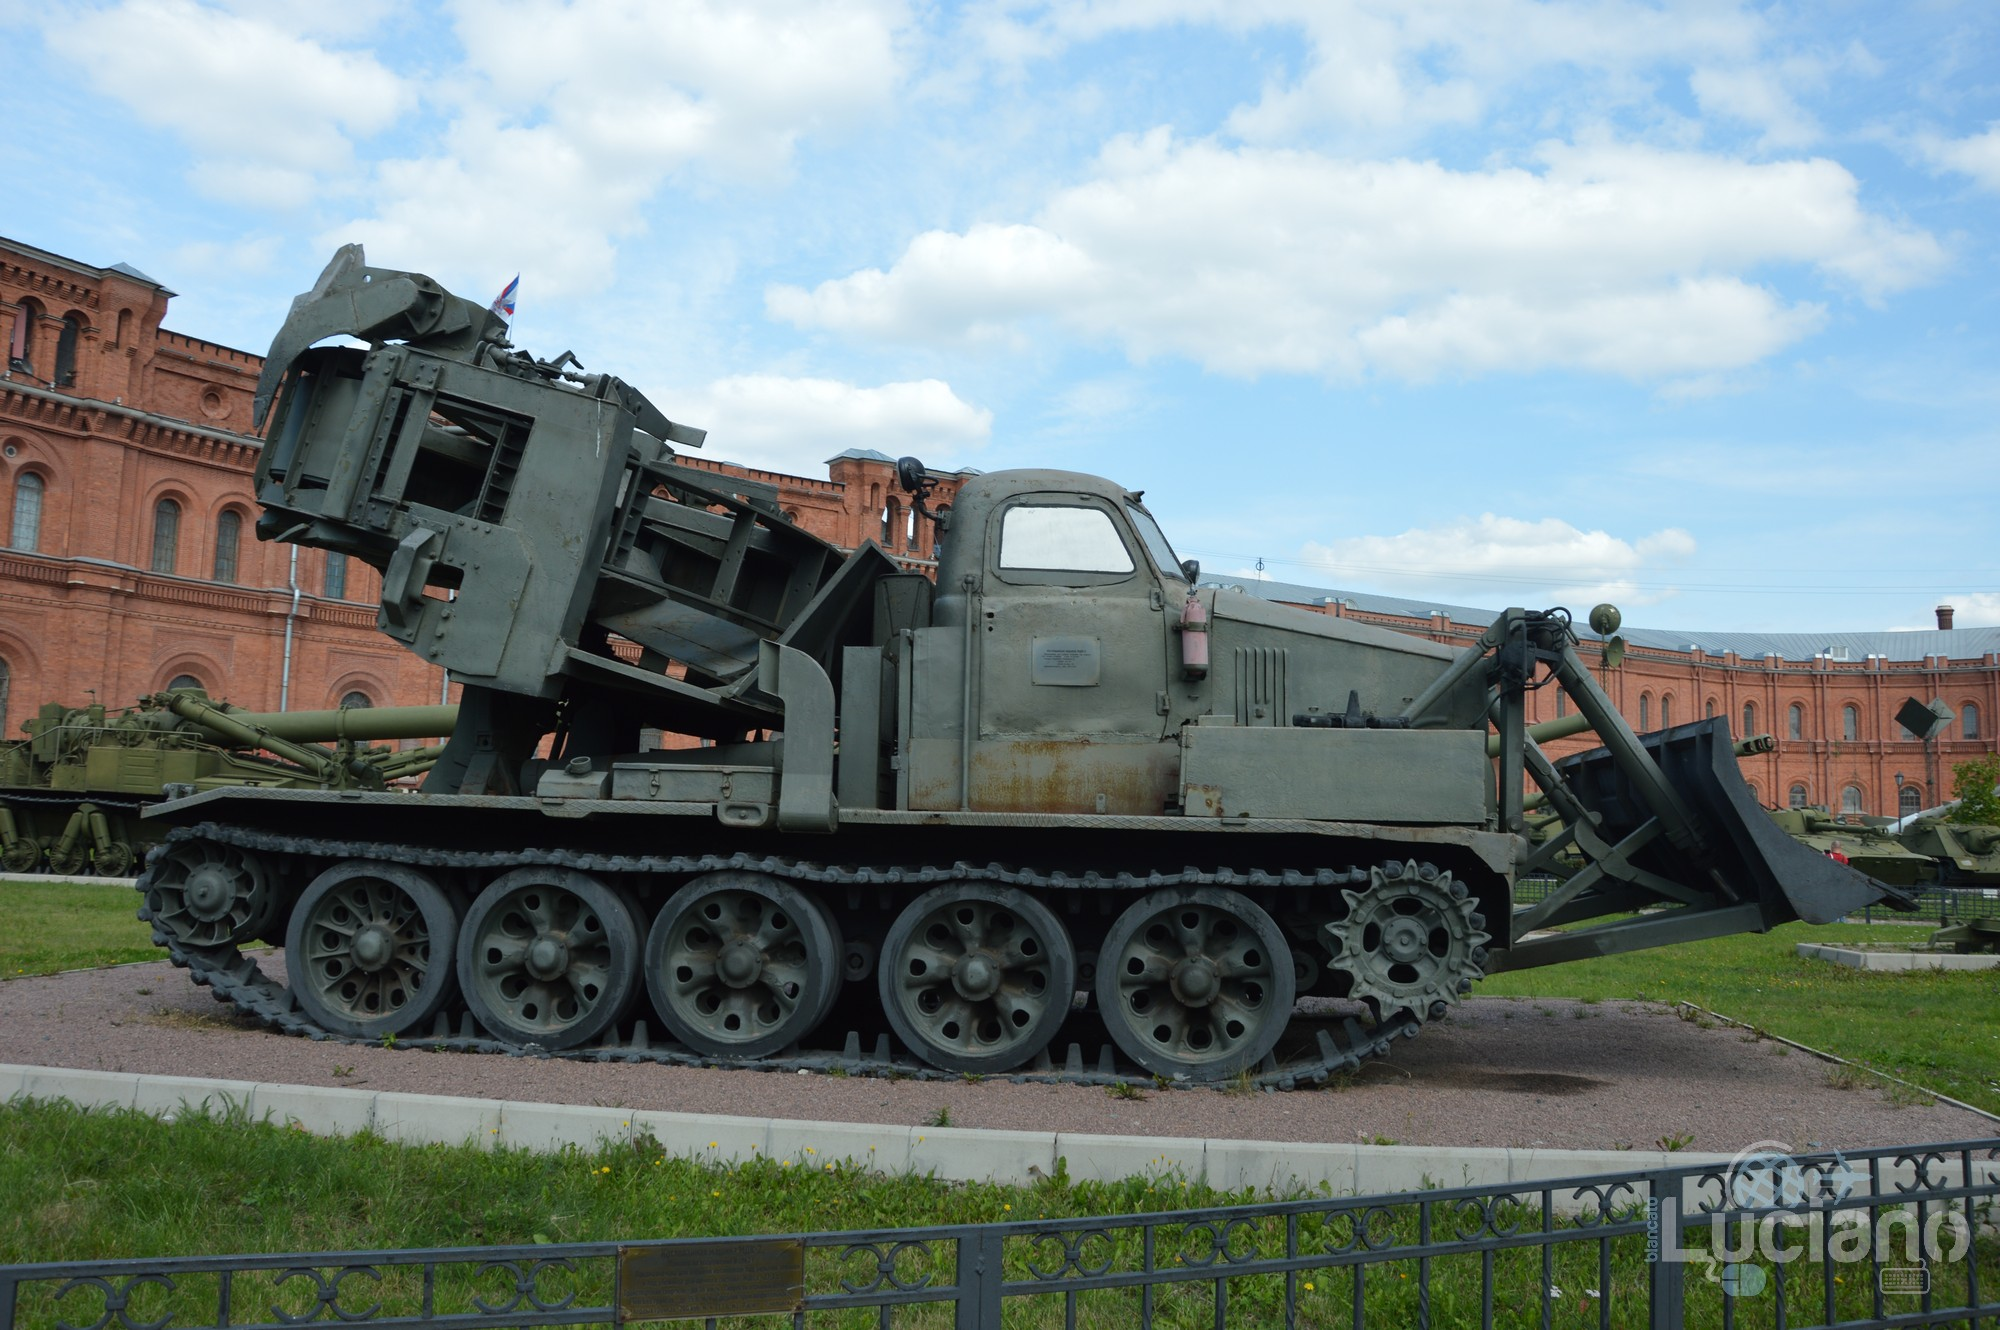 Military-Historical-Museum-of-Artillery-Engineer-and-Signal-Corps-St-Petersburg-Russia-Luciano-Blancato- (79)